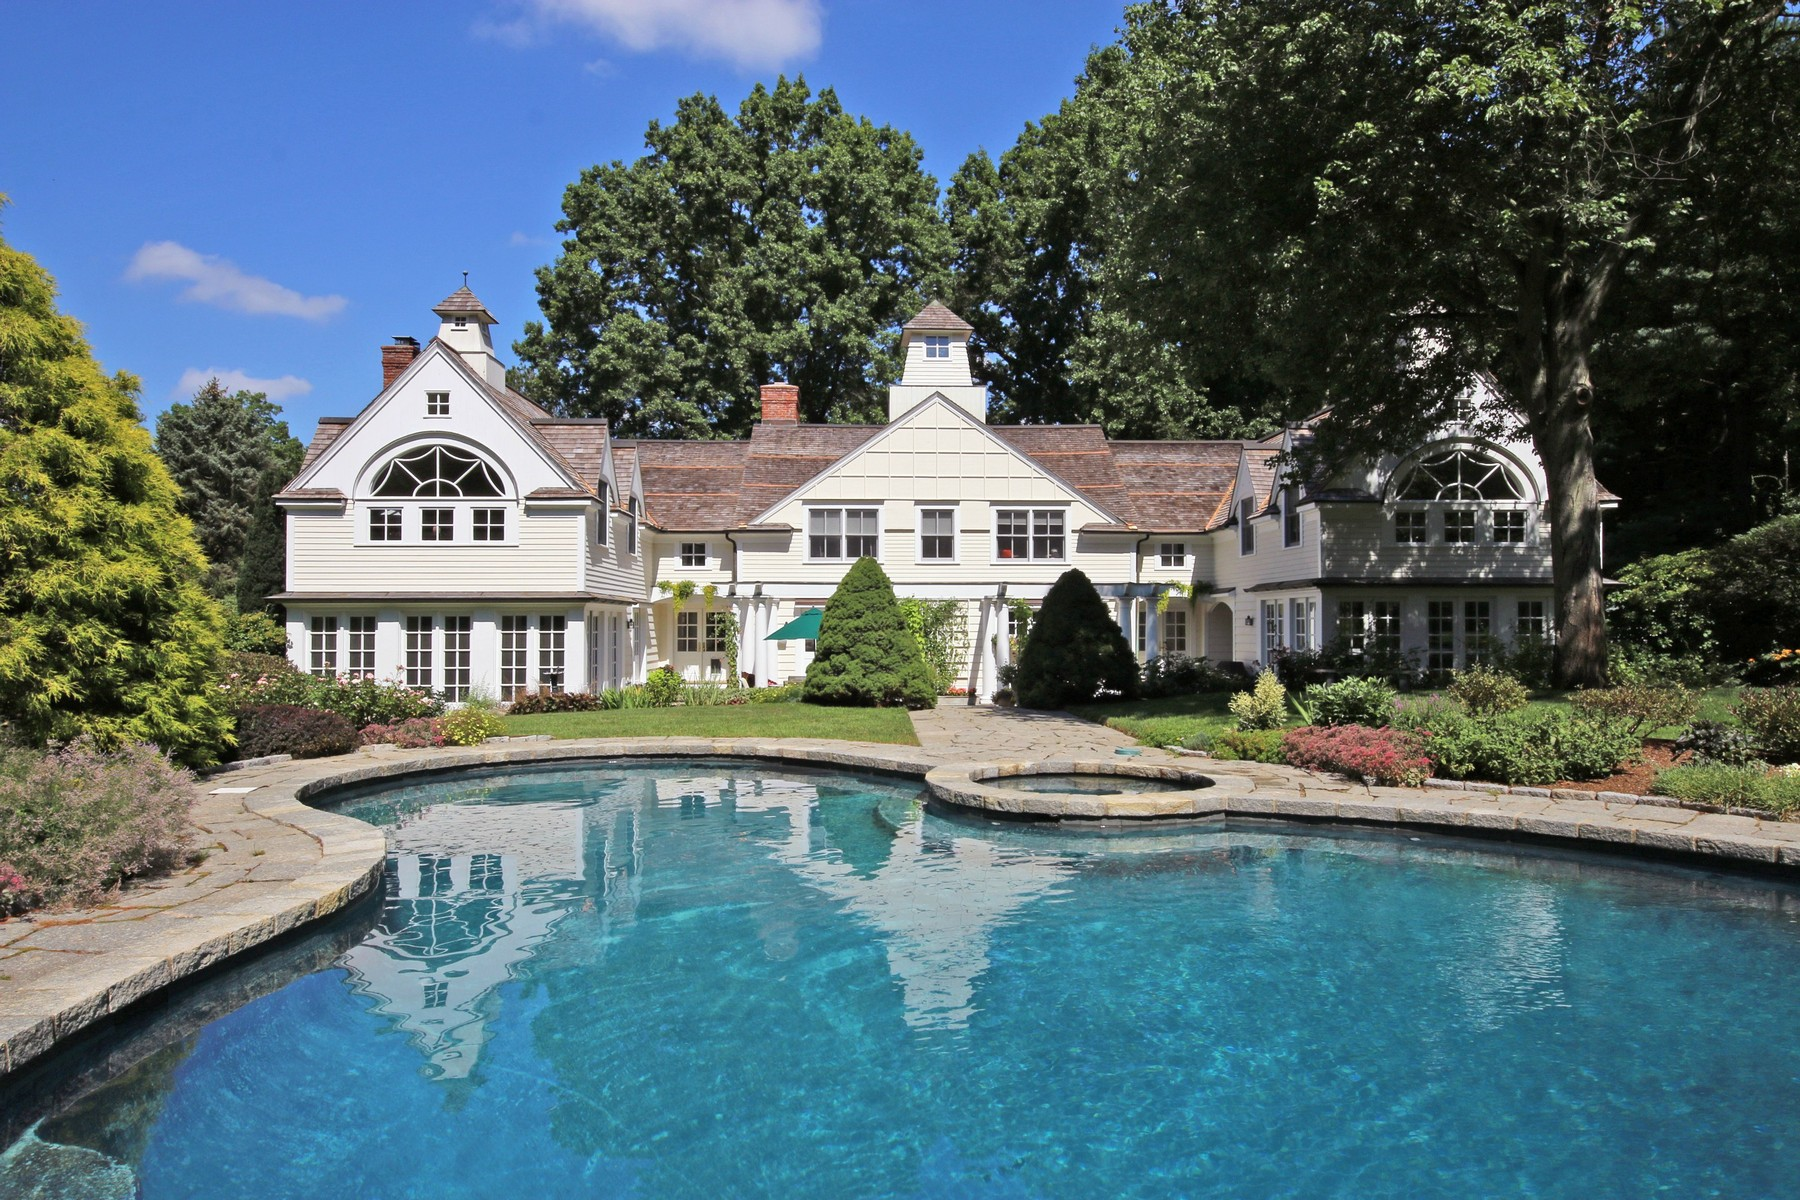 Villa per Vendita alle ore EXQUISITE COUNTRY ESTATE 445 Old Academy Road Fairfield, Connecticut, 06824 Stati Uniti